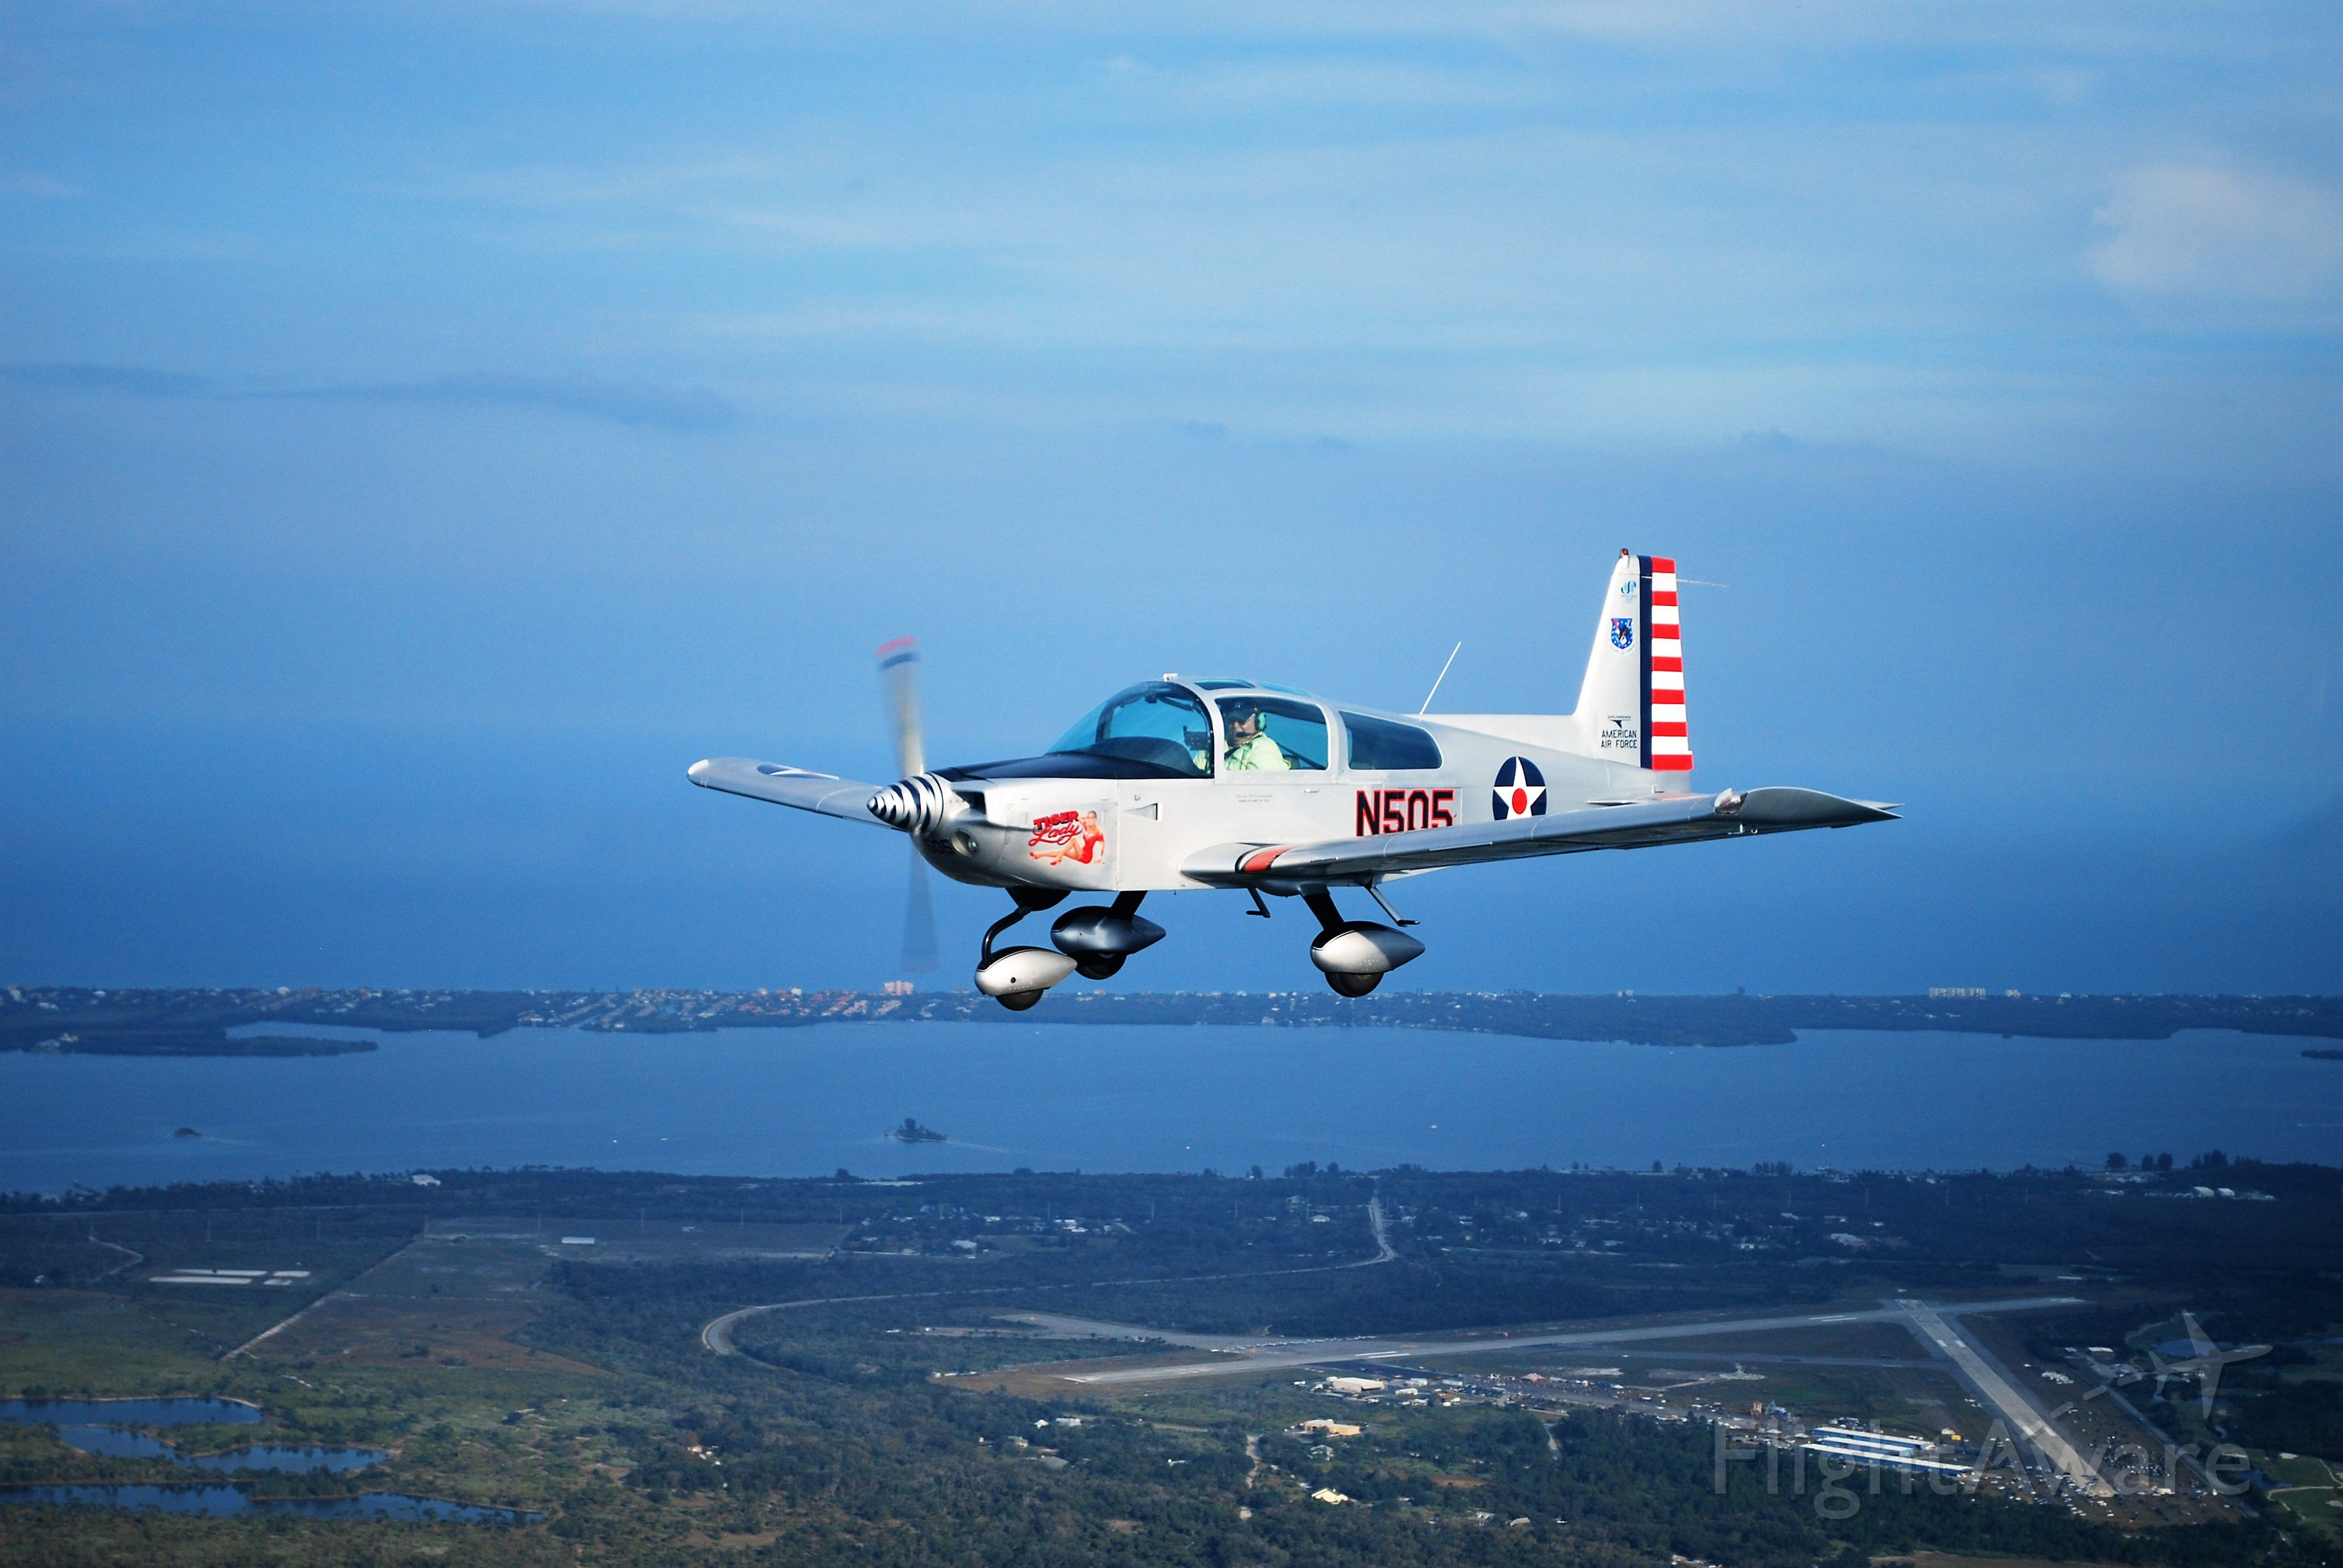 N505 — - FLYING IN THE FLORIDA SUN